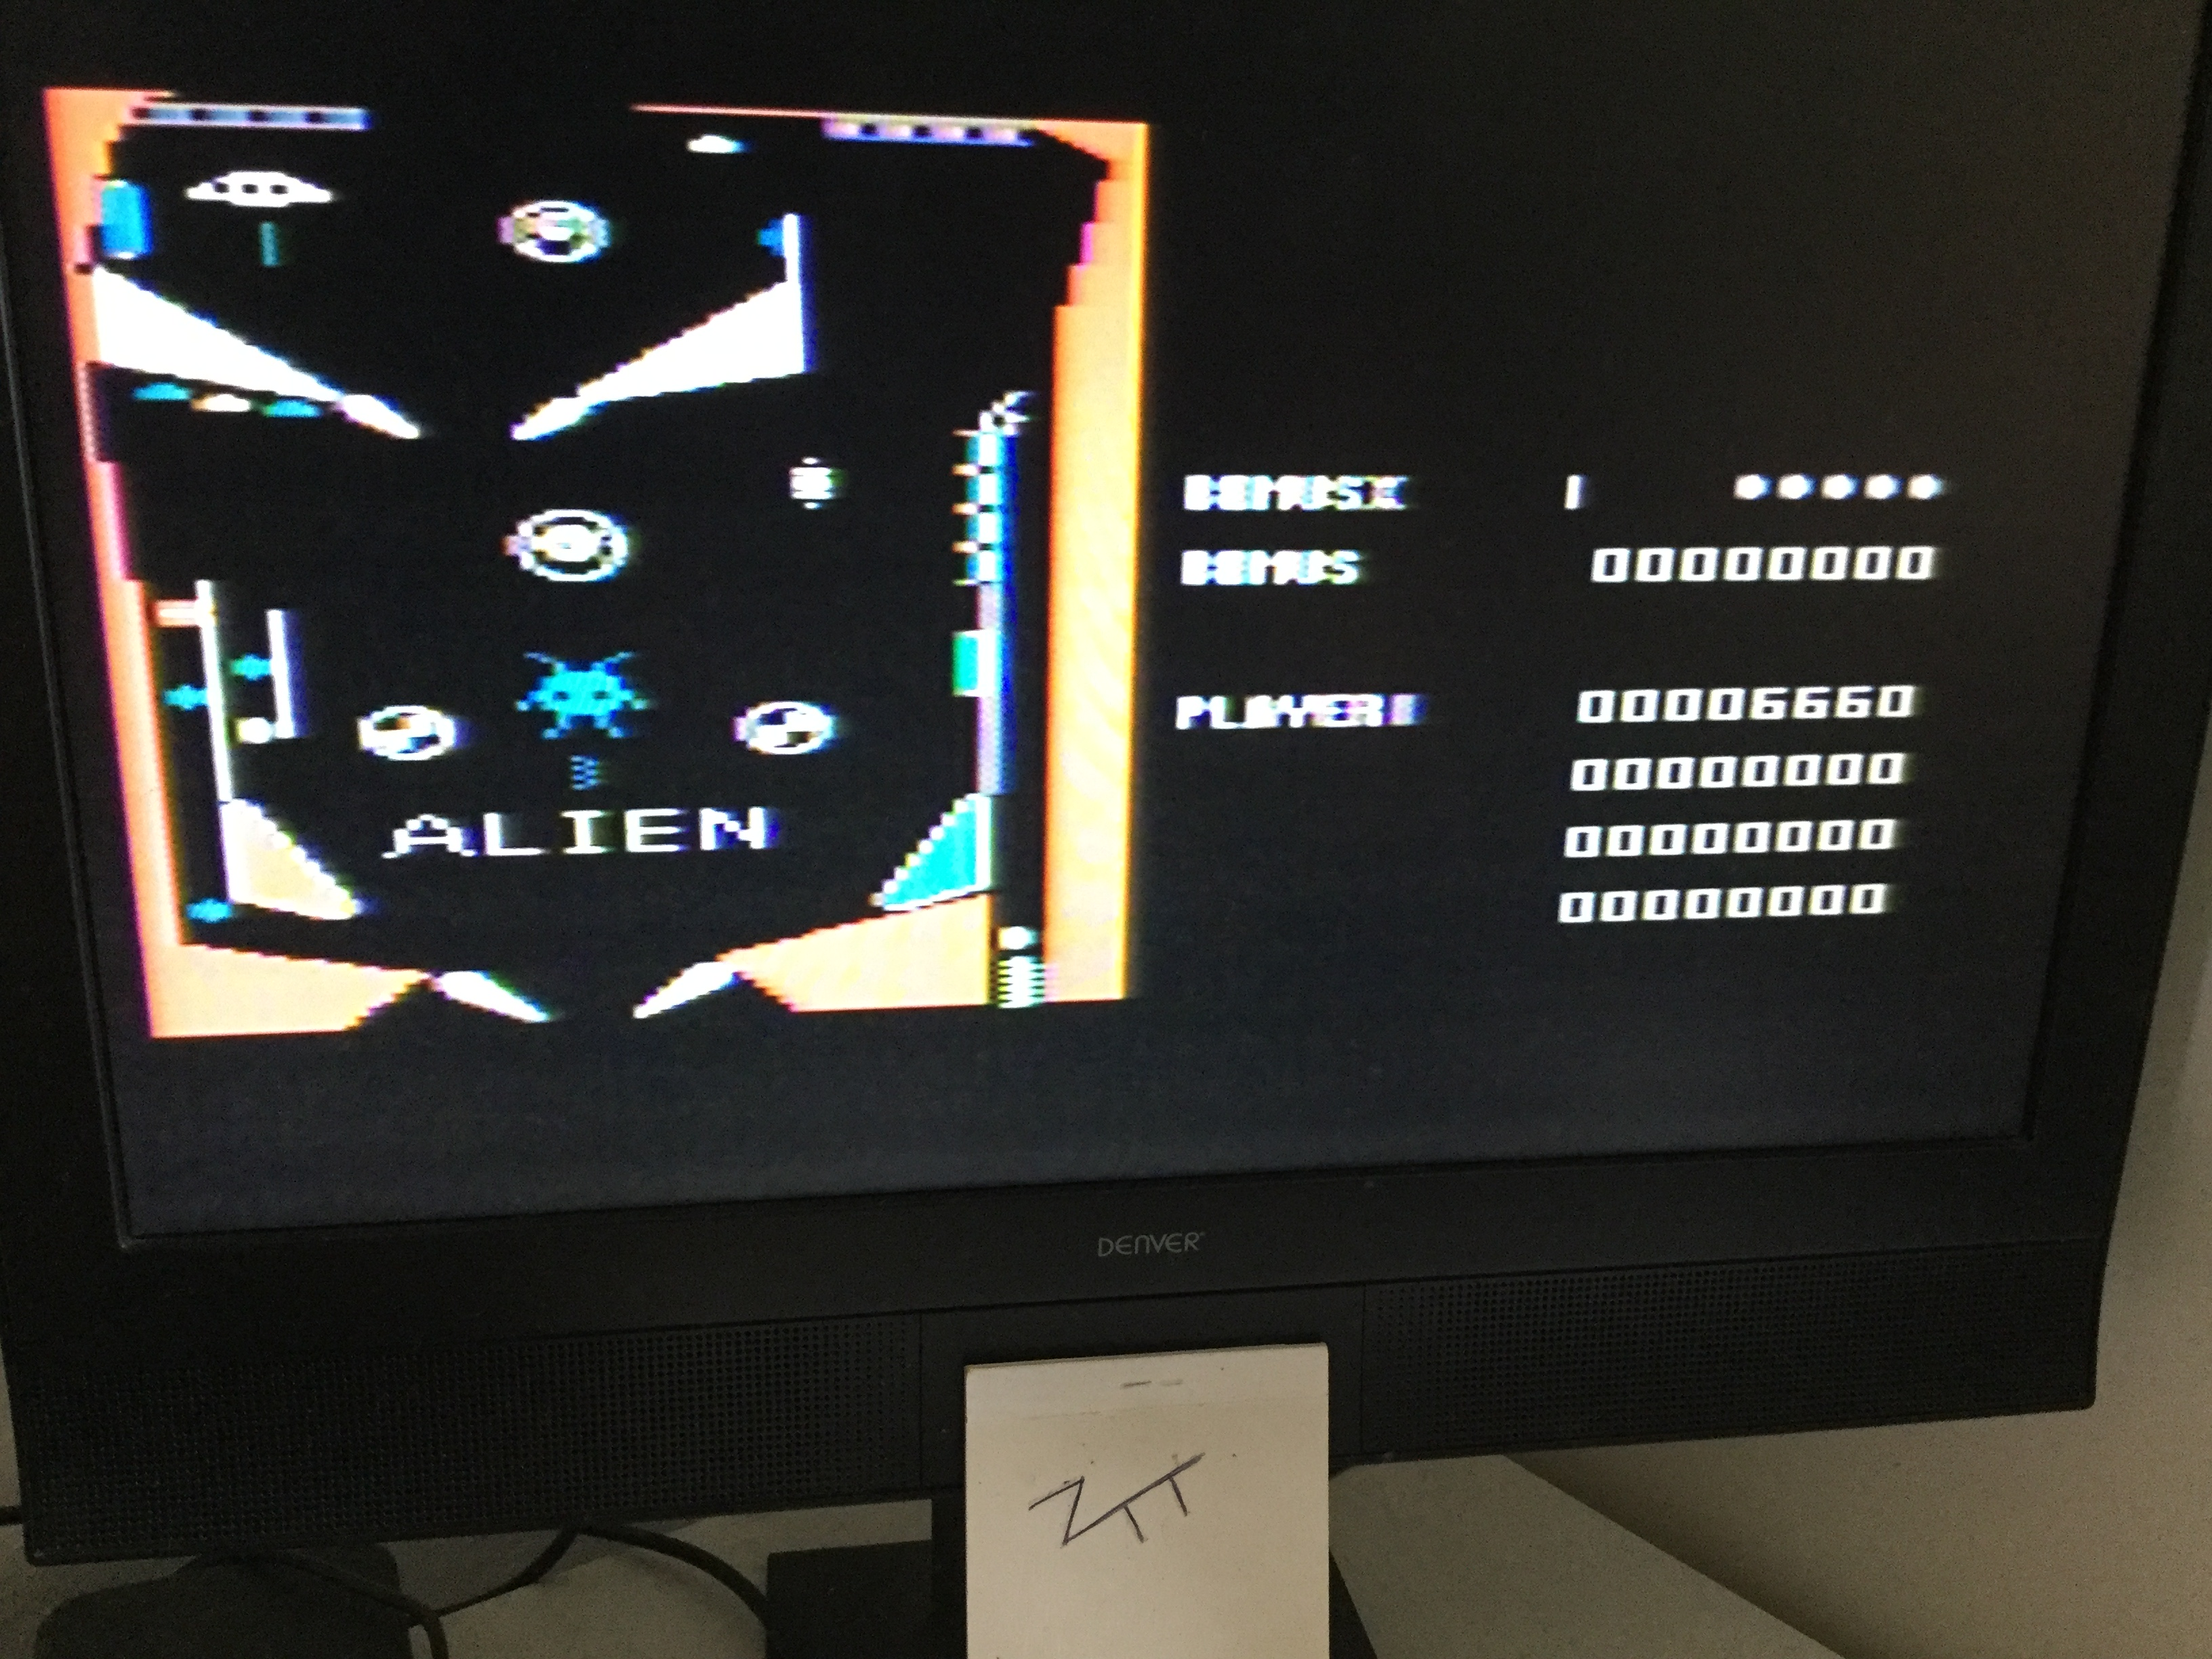 Frankie: Alien [Pinball Game] (Atari 400/800/XL/XE) 6,660 points on 2019-07-07 07:44:41